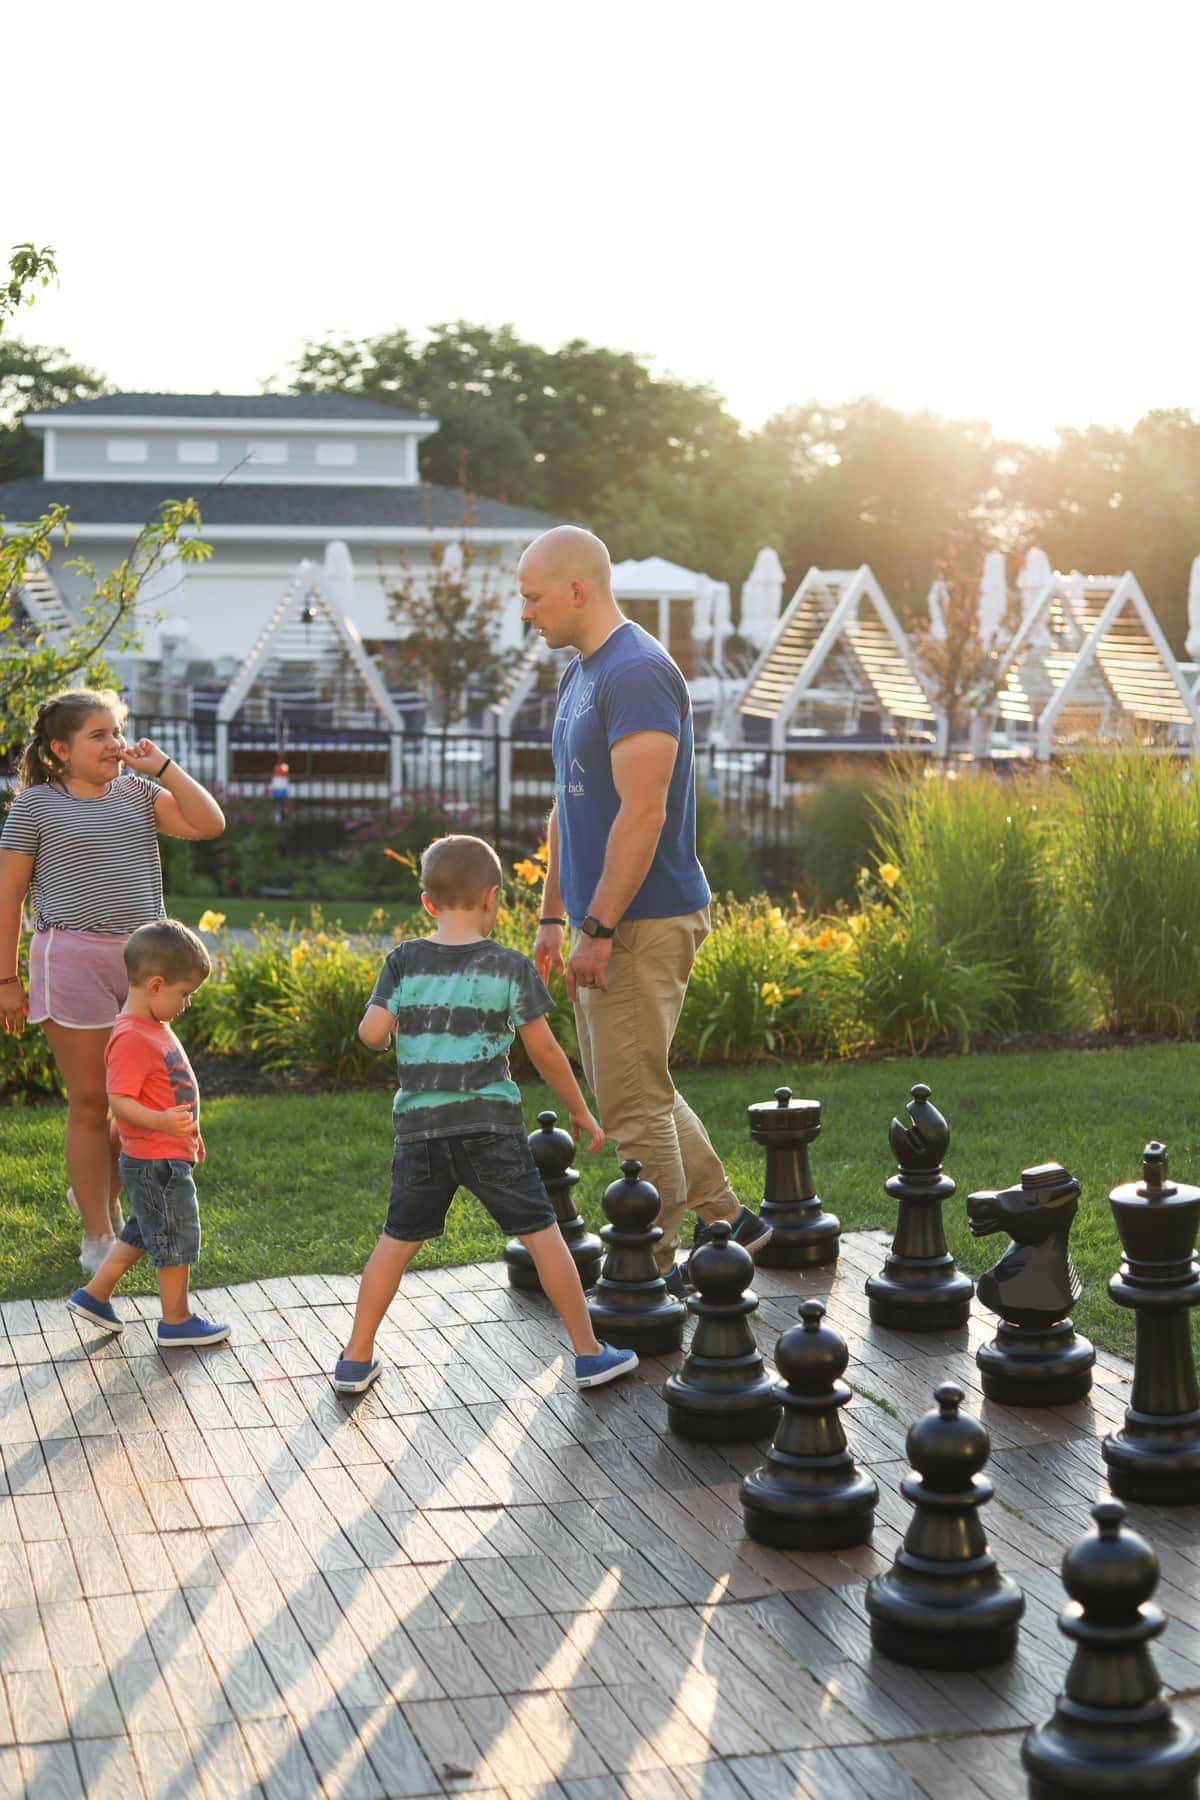 Gordon and the kids with a giant chess set